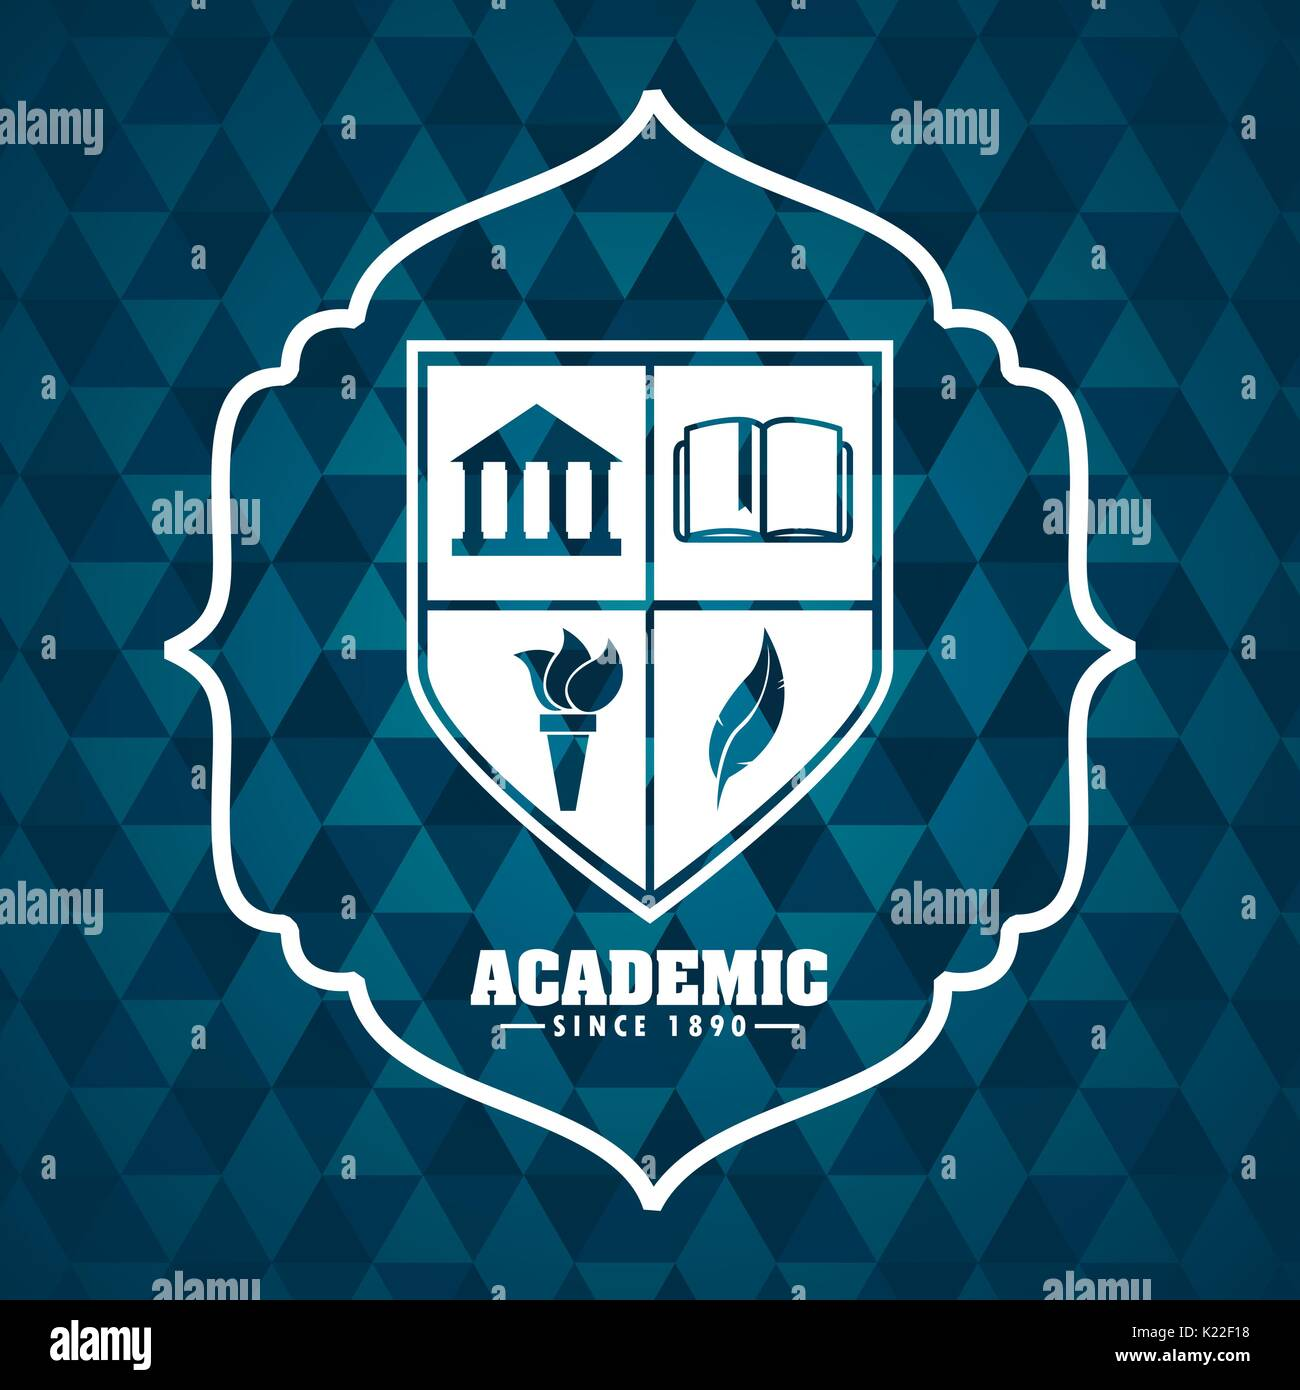 academic award design  Stock Vector